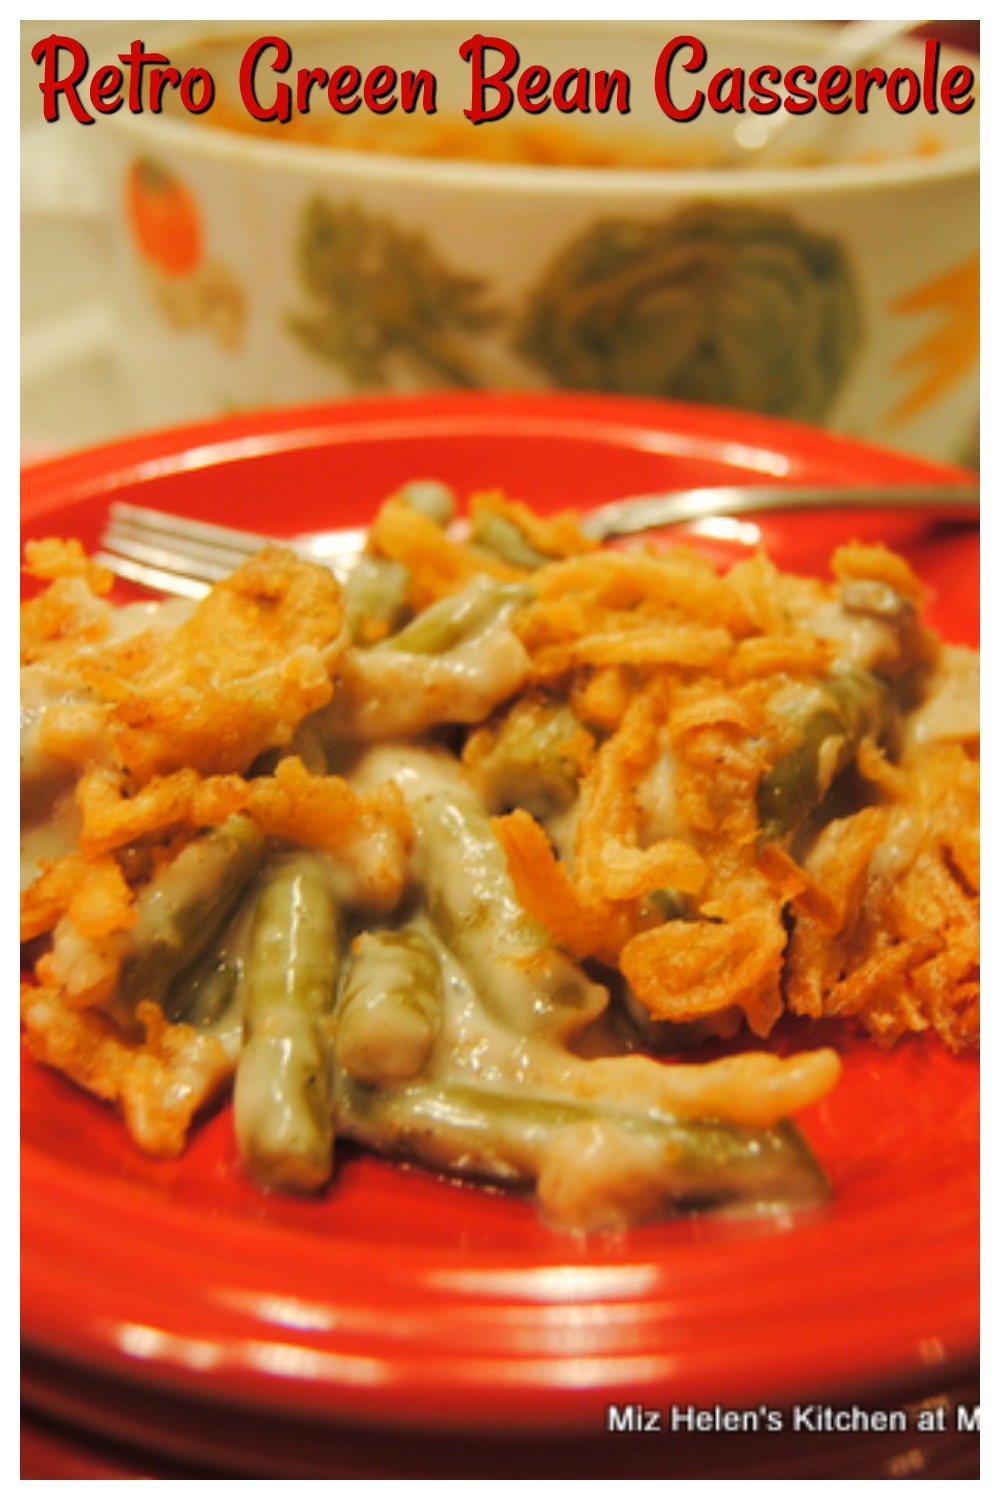 Retro Green Bean Casserole